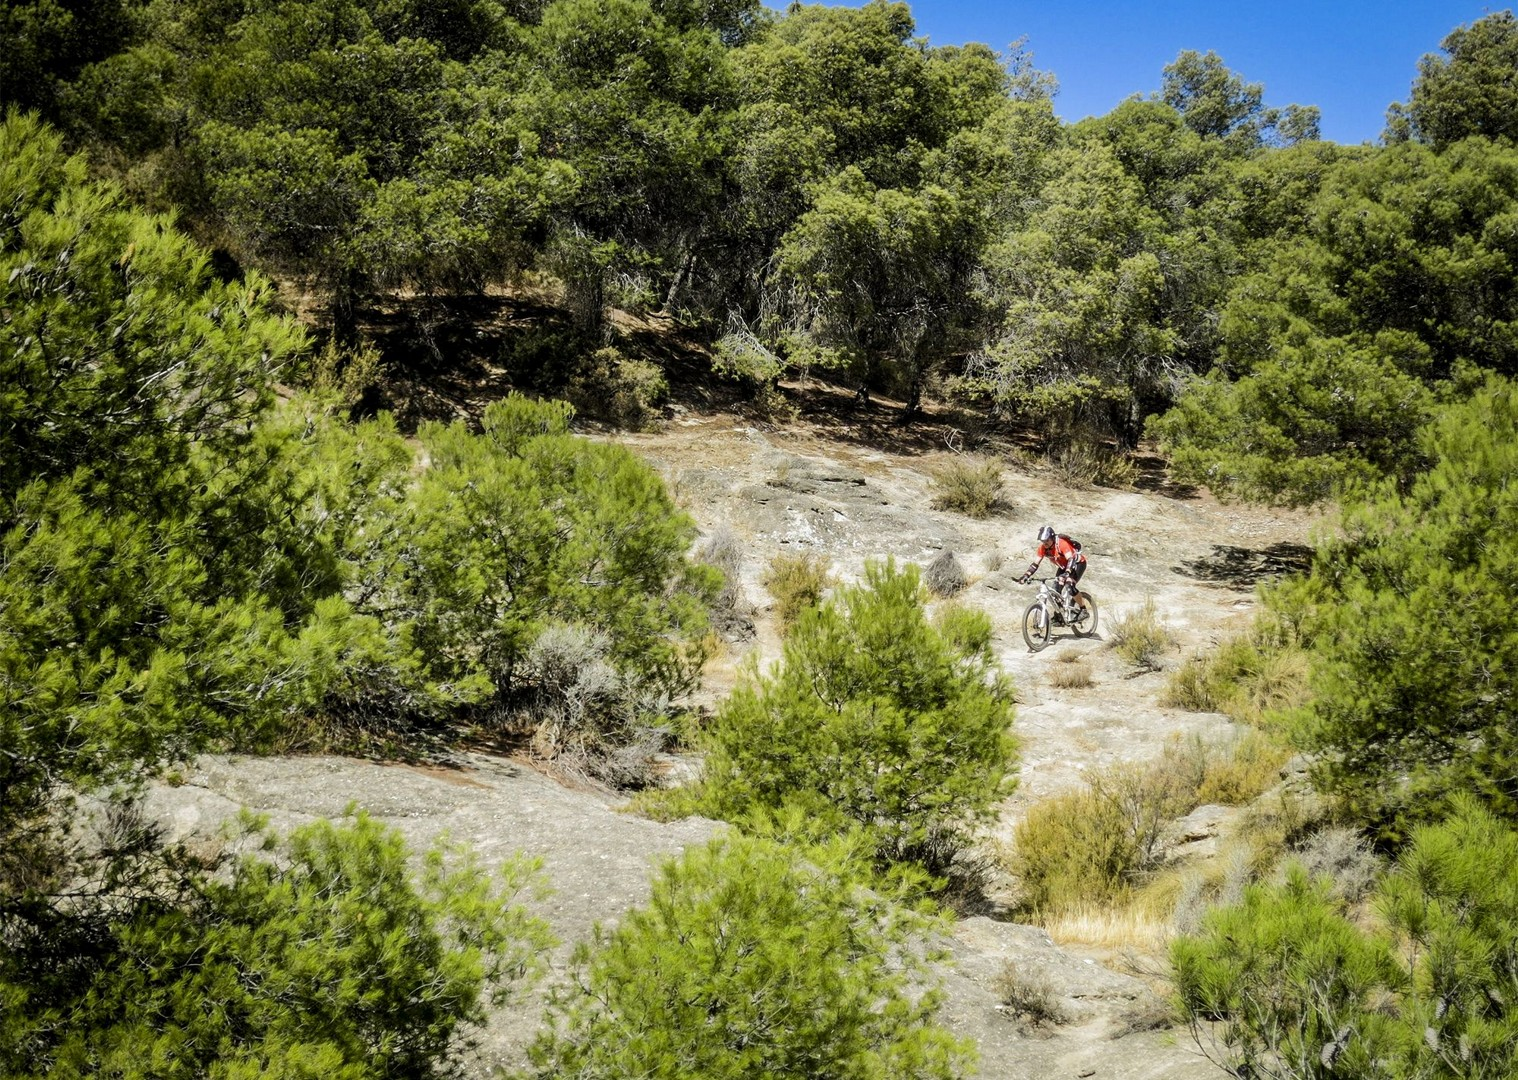 limestone-peaks-of-grazalema-national-park-mountain-biking.jpg - Spain - Awesome Andalucia - Guided Mountain Bike Holiday - Mountain Biking